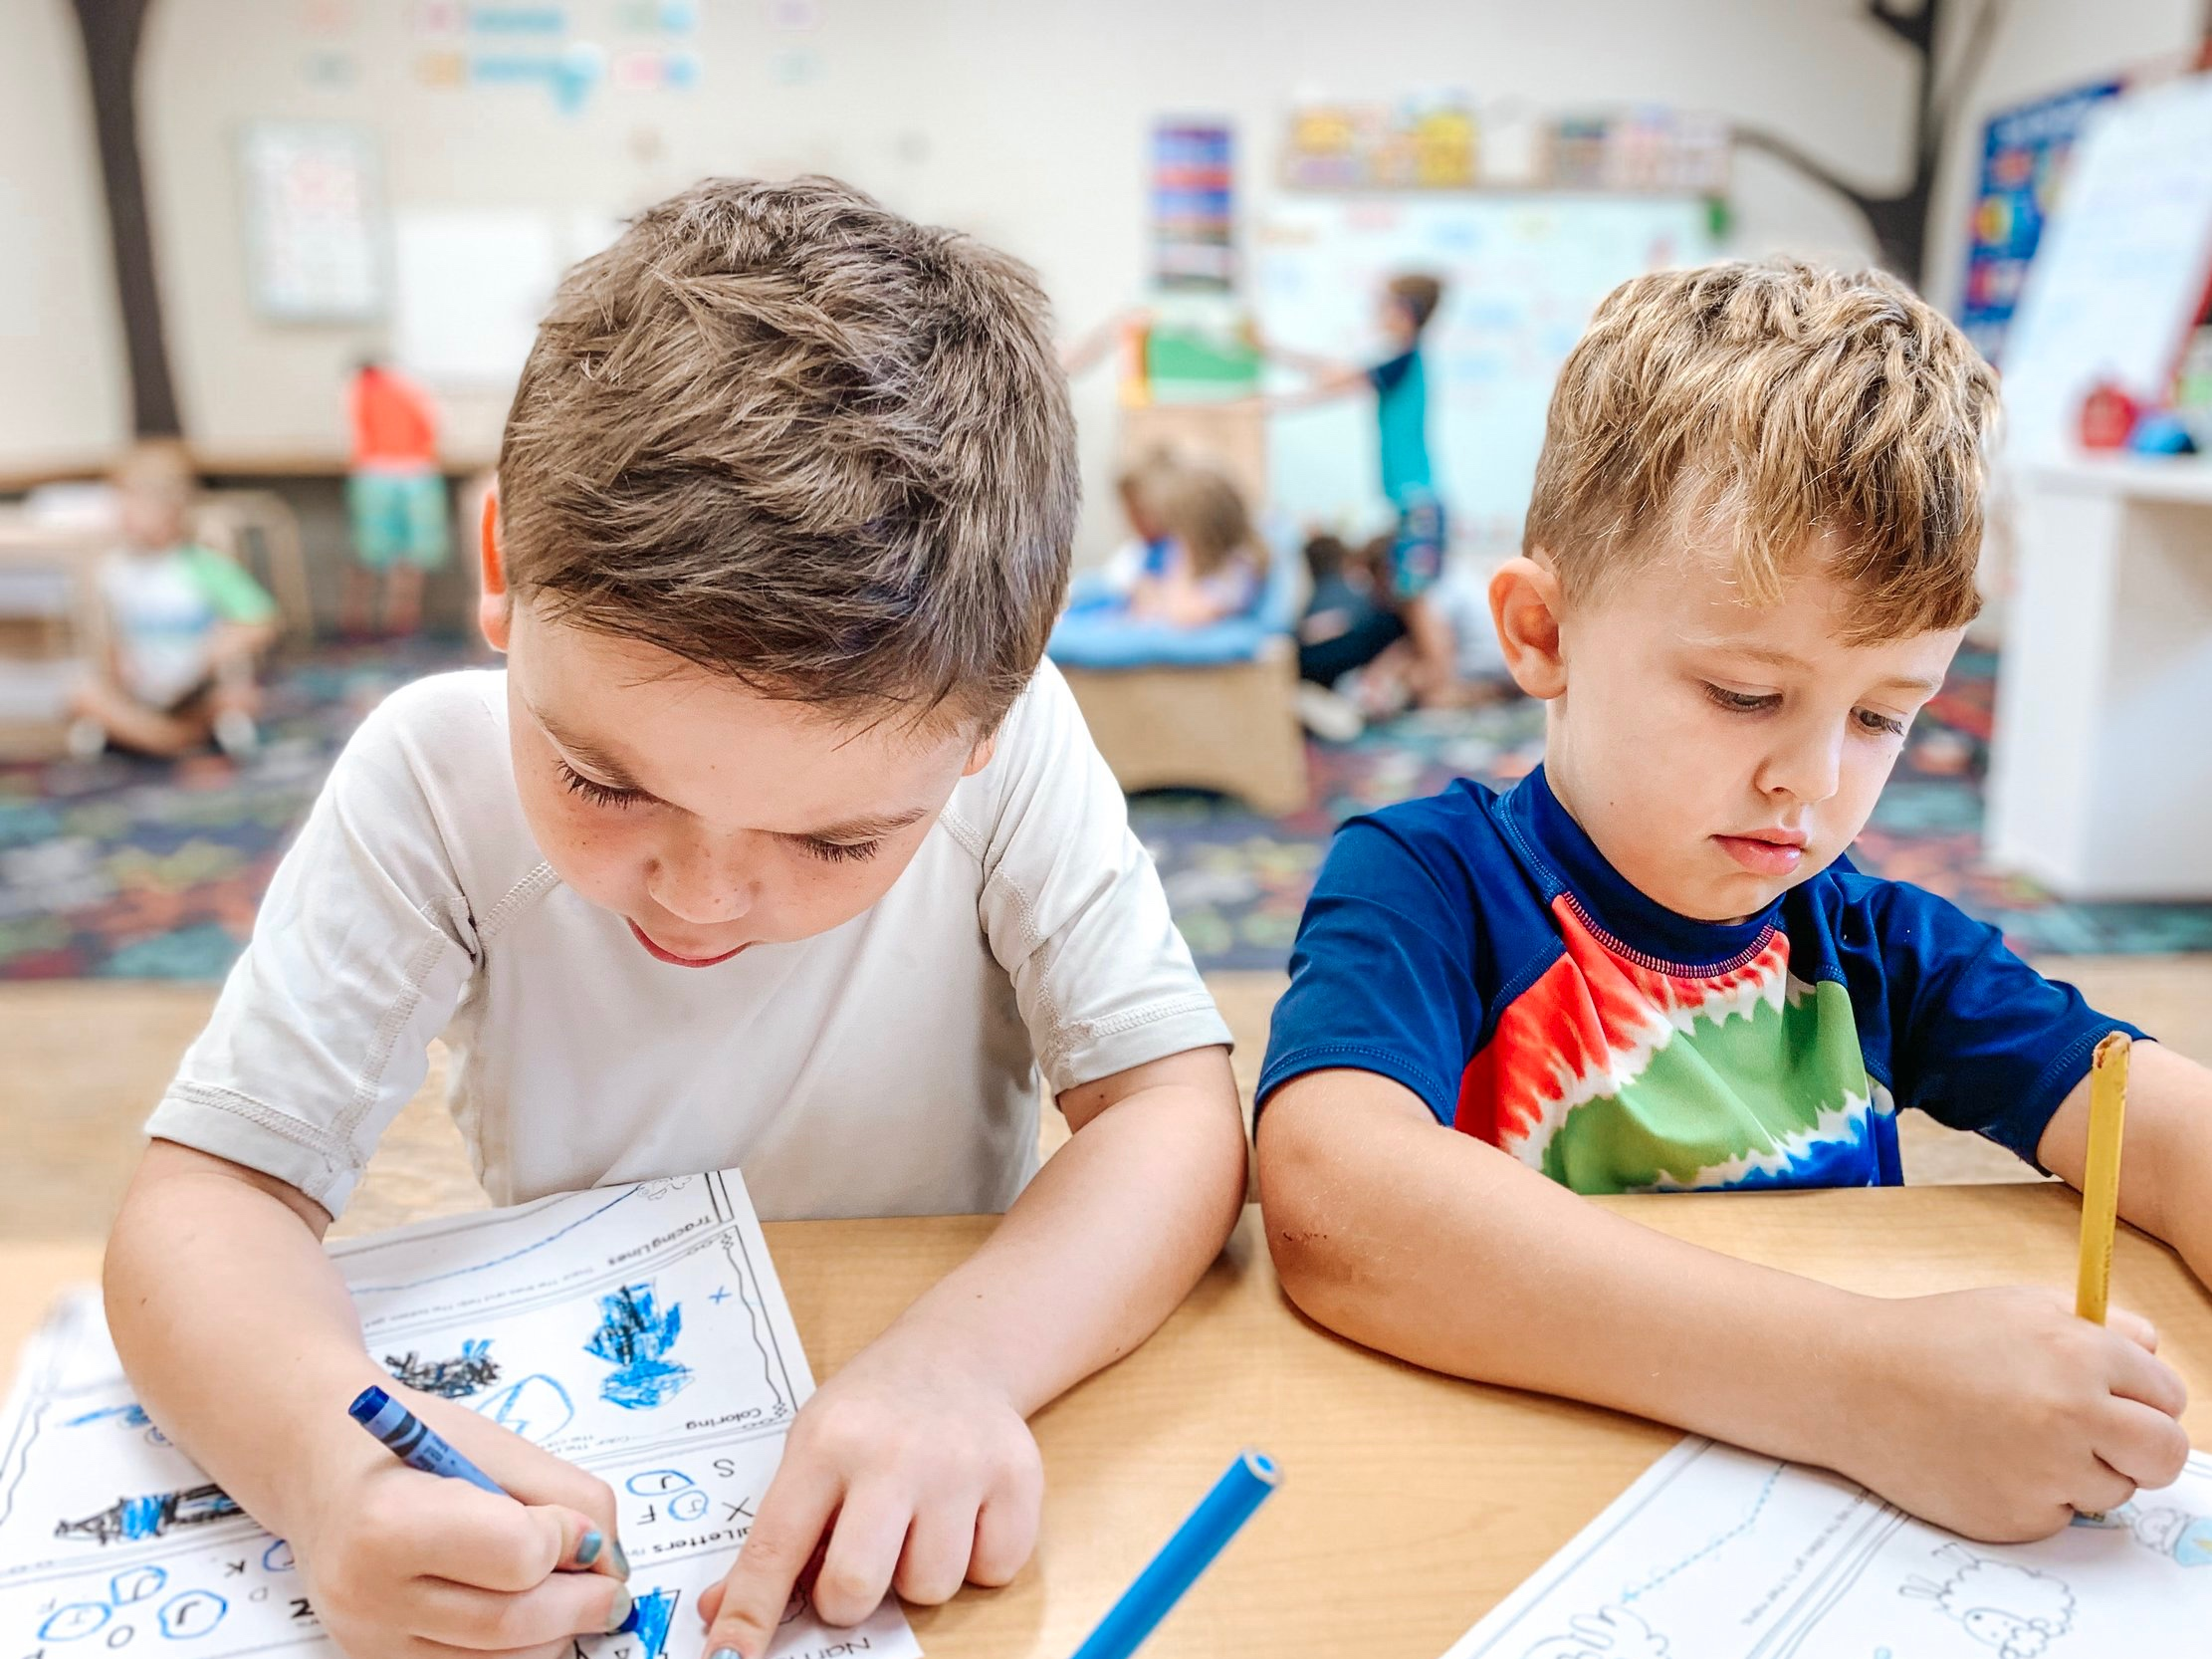 Creating confident learners - Our curriculum focuses on skills to help students become critical thinkers, creative problem solvers, and open-minded communicators. Our state-certified teacher guides children by using Ohio's Common Core Standards in math, science, social studies, and language arts.